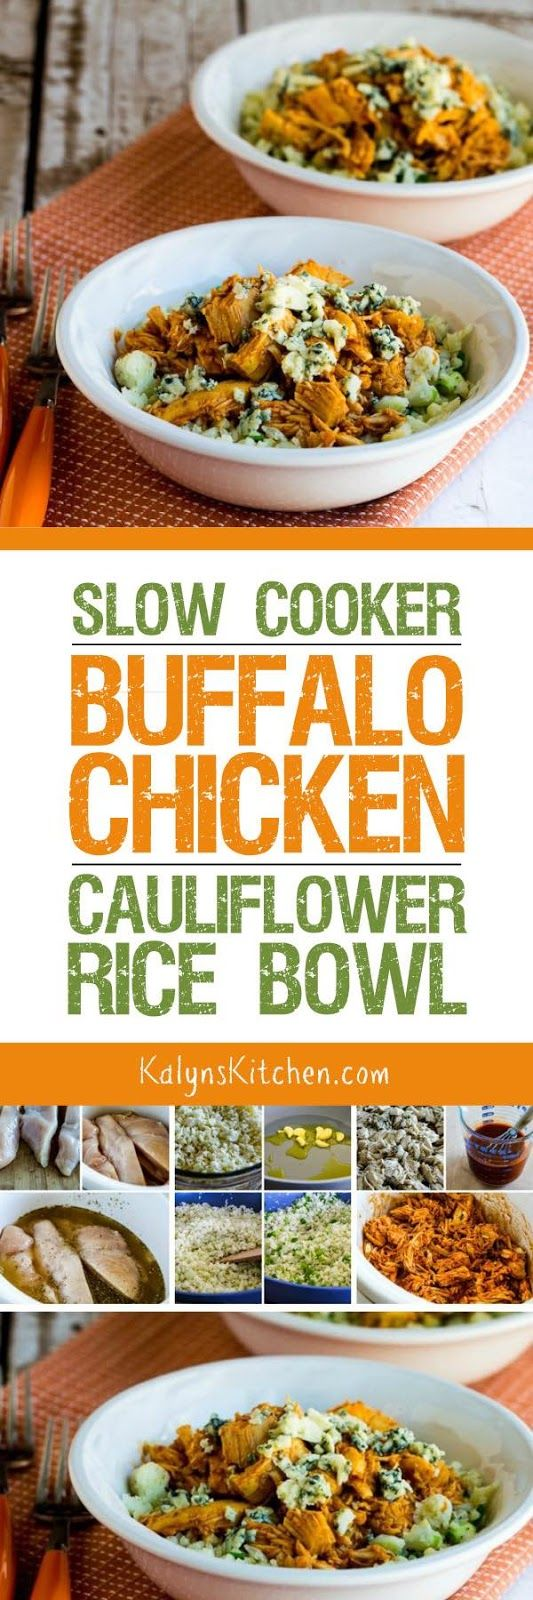 This Slow Cooker Buffalo Chicken Cauliflower Rice Bowl is an amazing low-carb chicken dinner from the slow cooker! If you like the flavors of buffalo chicken, you'll love this meal! [found on KalynsKitchen.com]